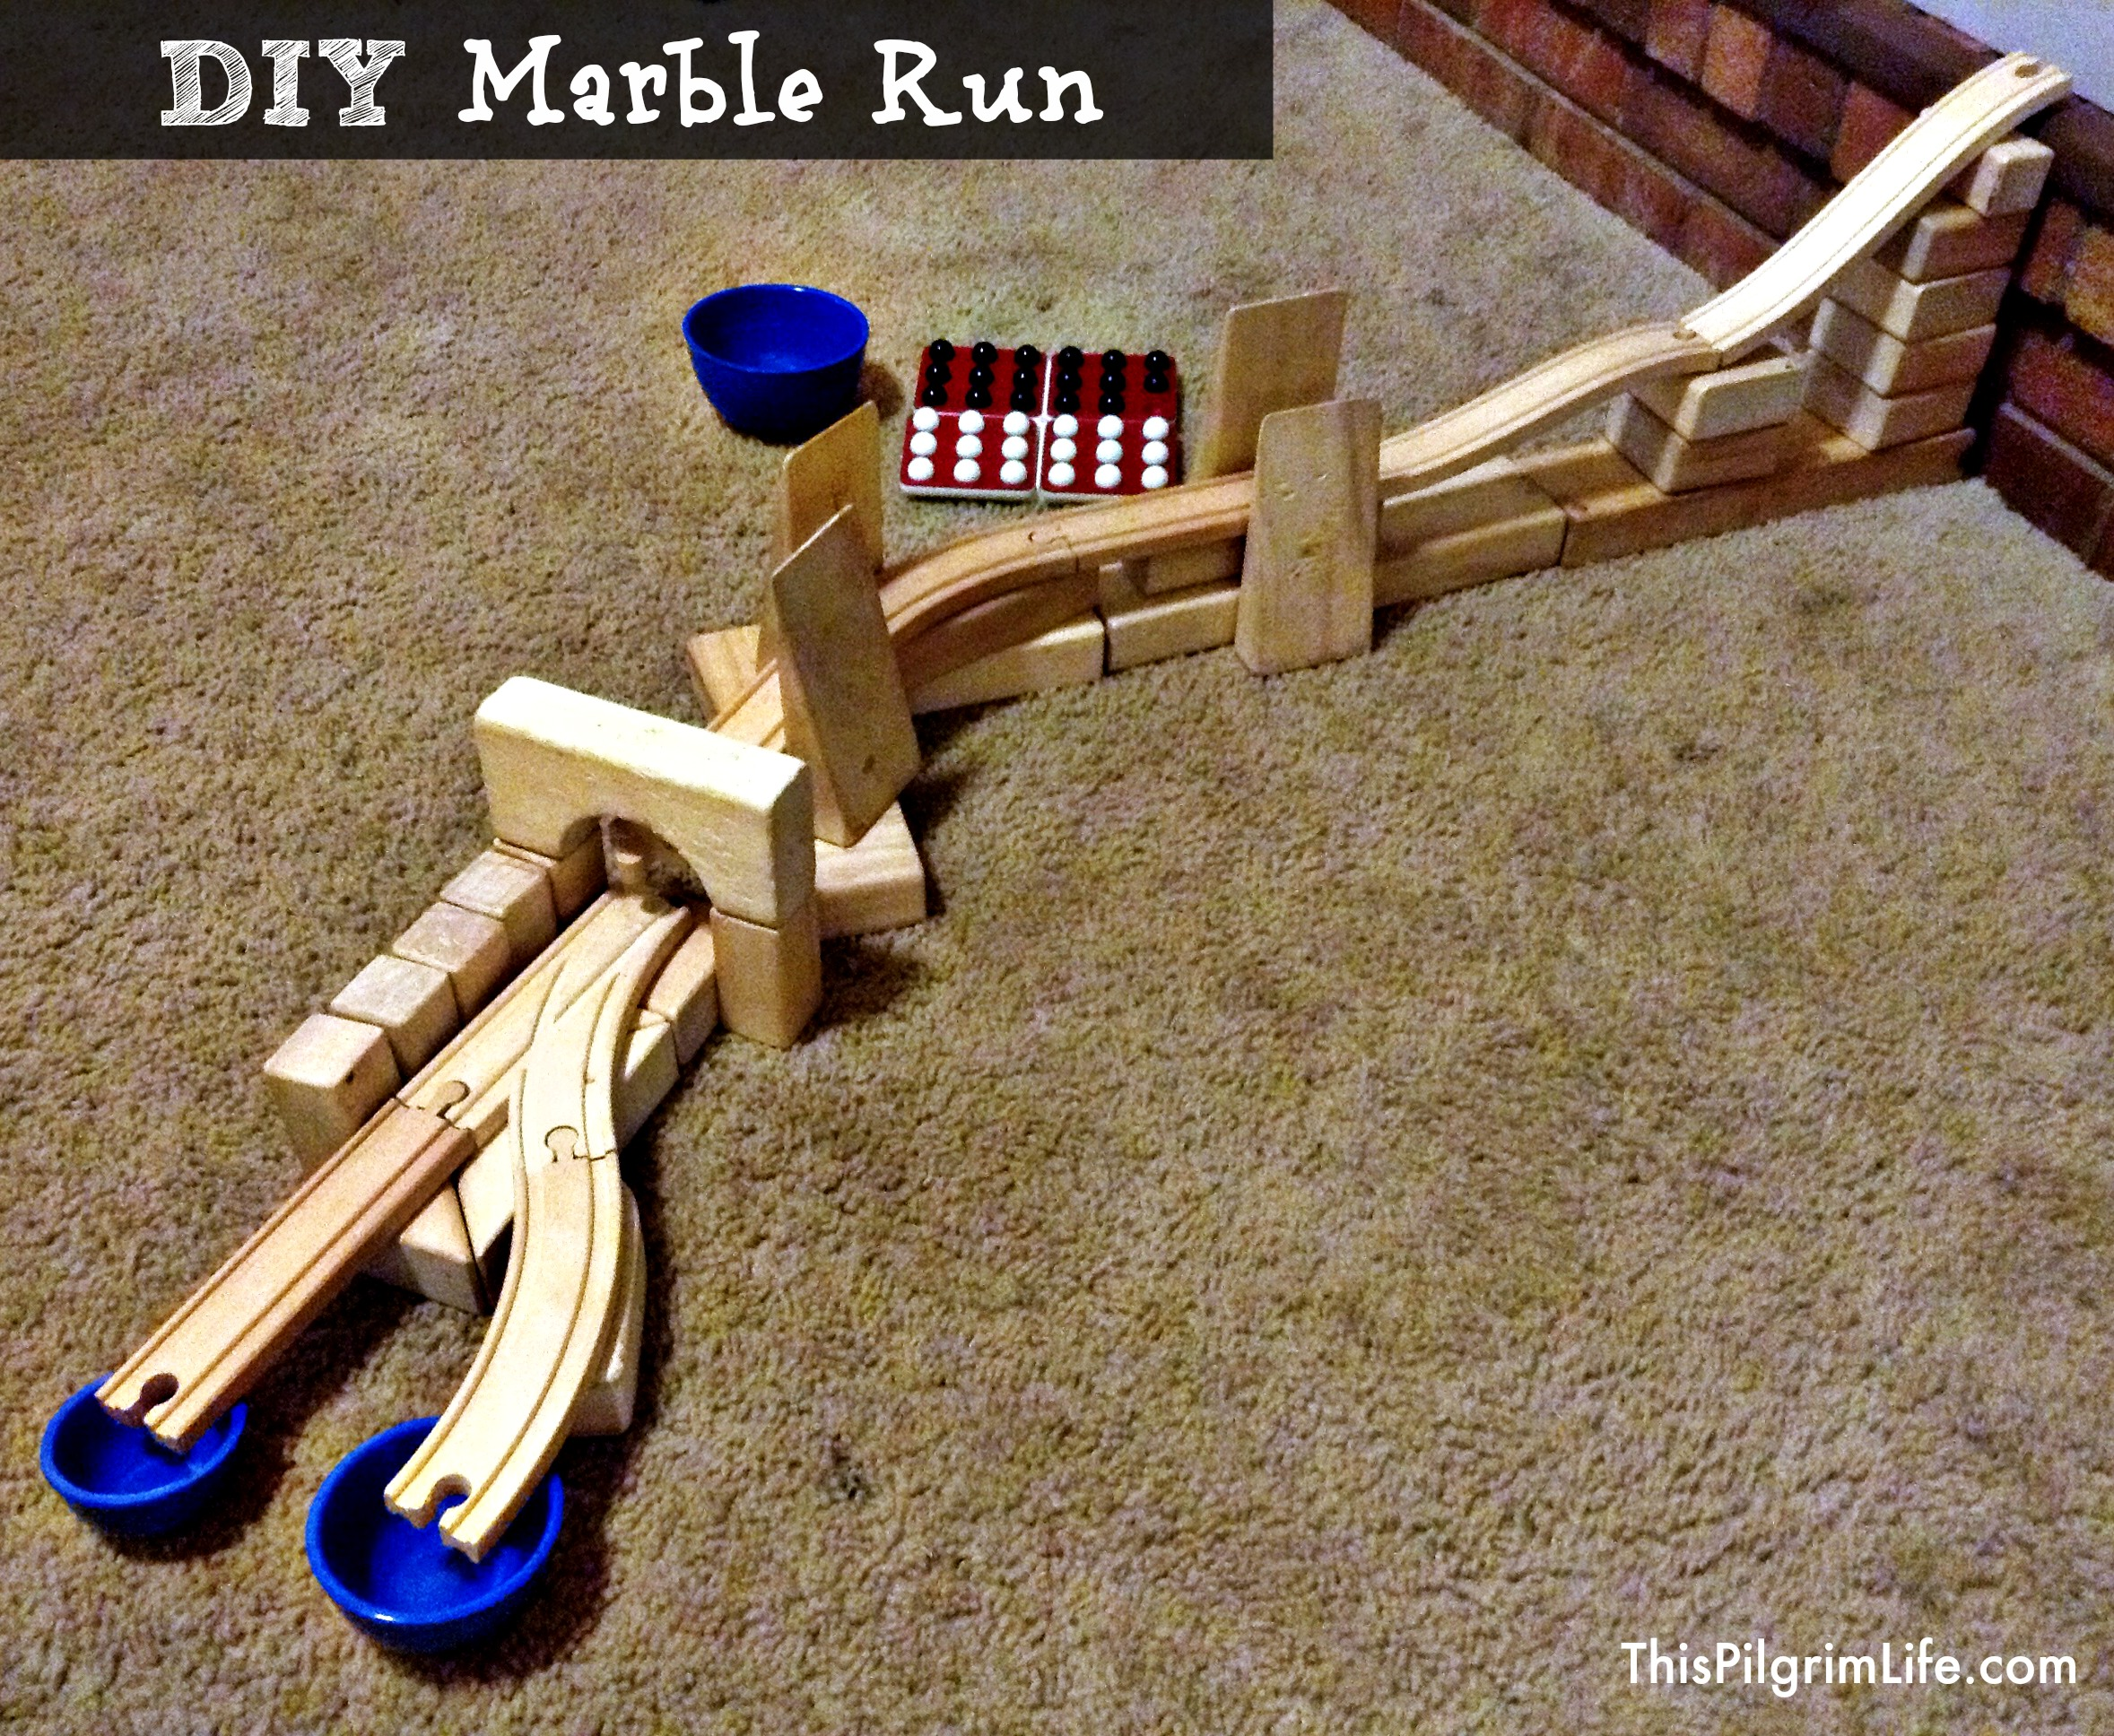 Woodworking Plans Marble Run : Awesome Pink Woodworking Plans Marble Run Innovation | egorlin.com